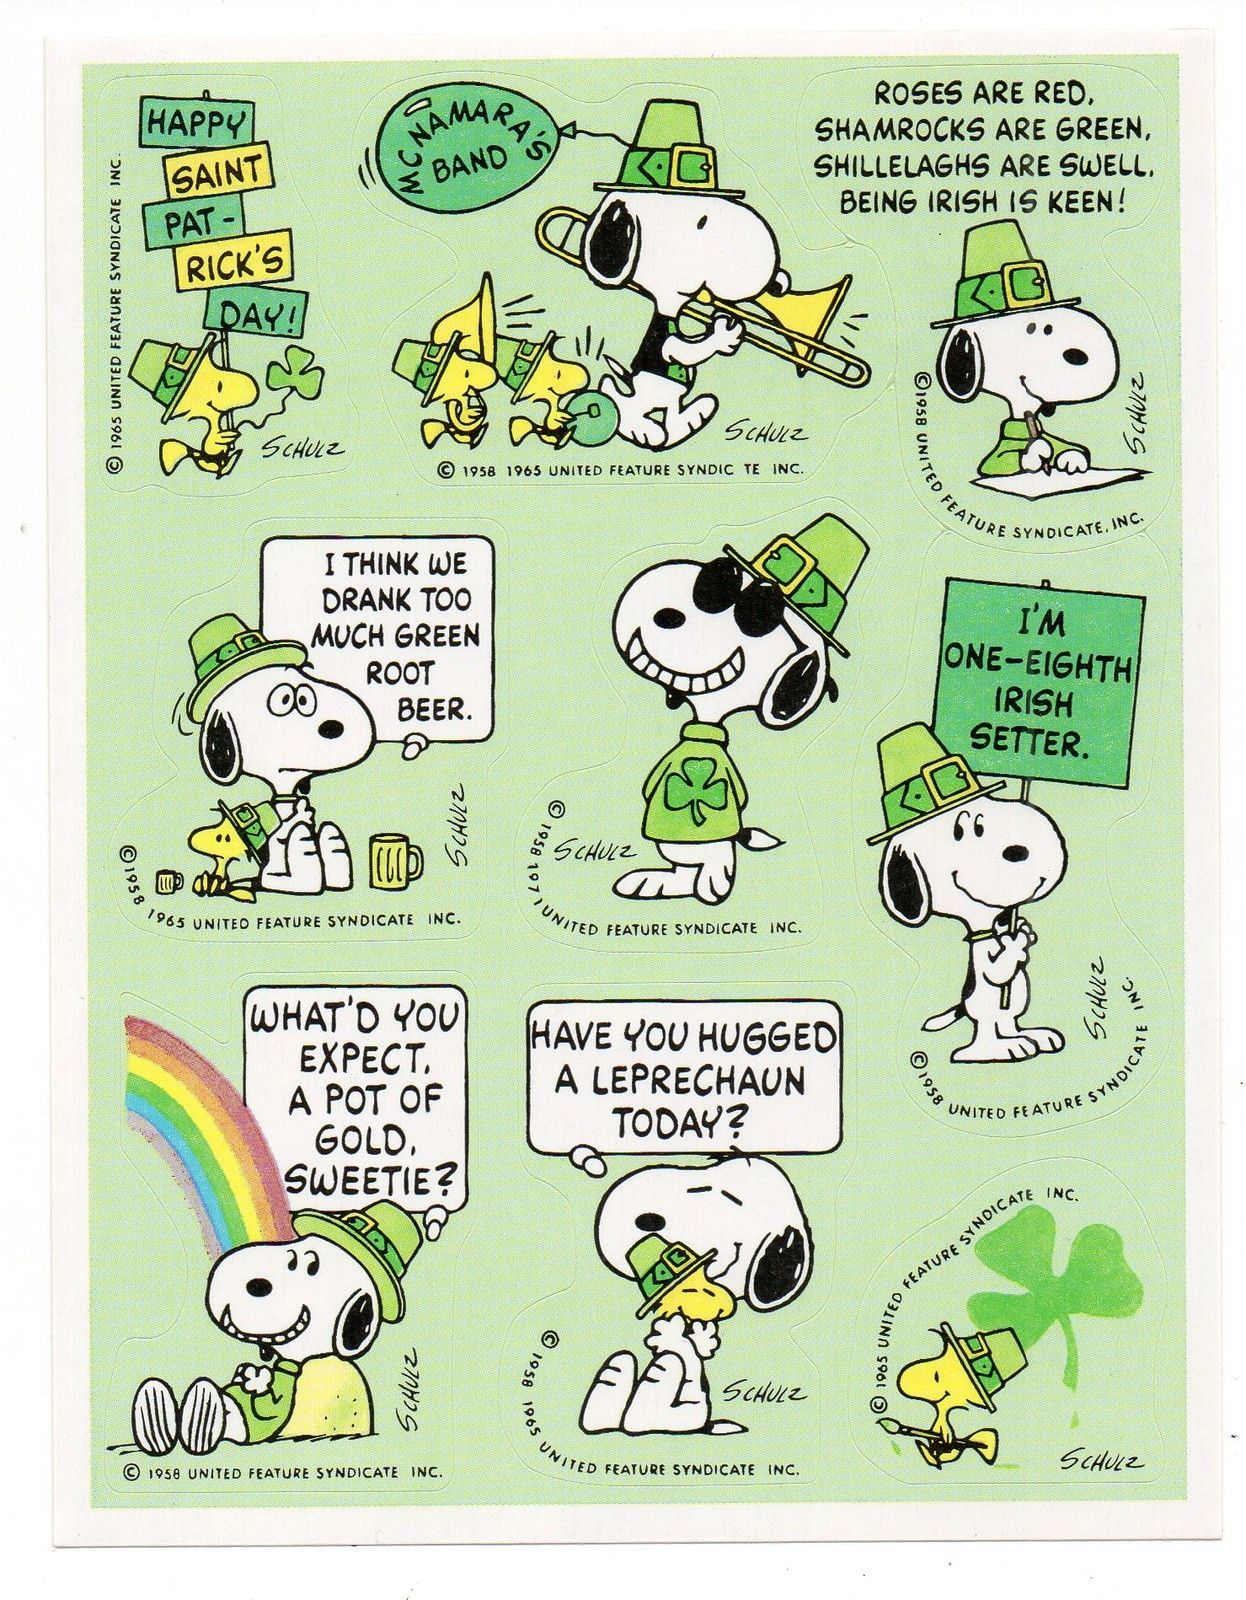 Vintage Hallmark Sticker St Patrick S Day Snoopy Peanuts 1 Sheet Scrapbooking Snoopy And Woodstock St Patricks Day Wallpaper St Patricks Day Quotes